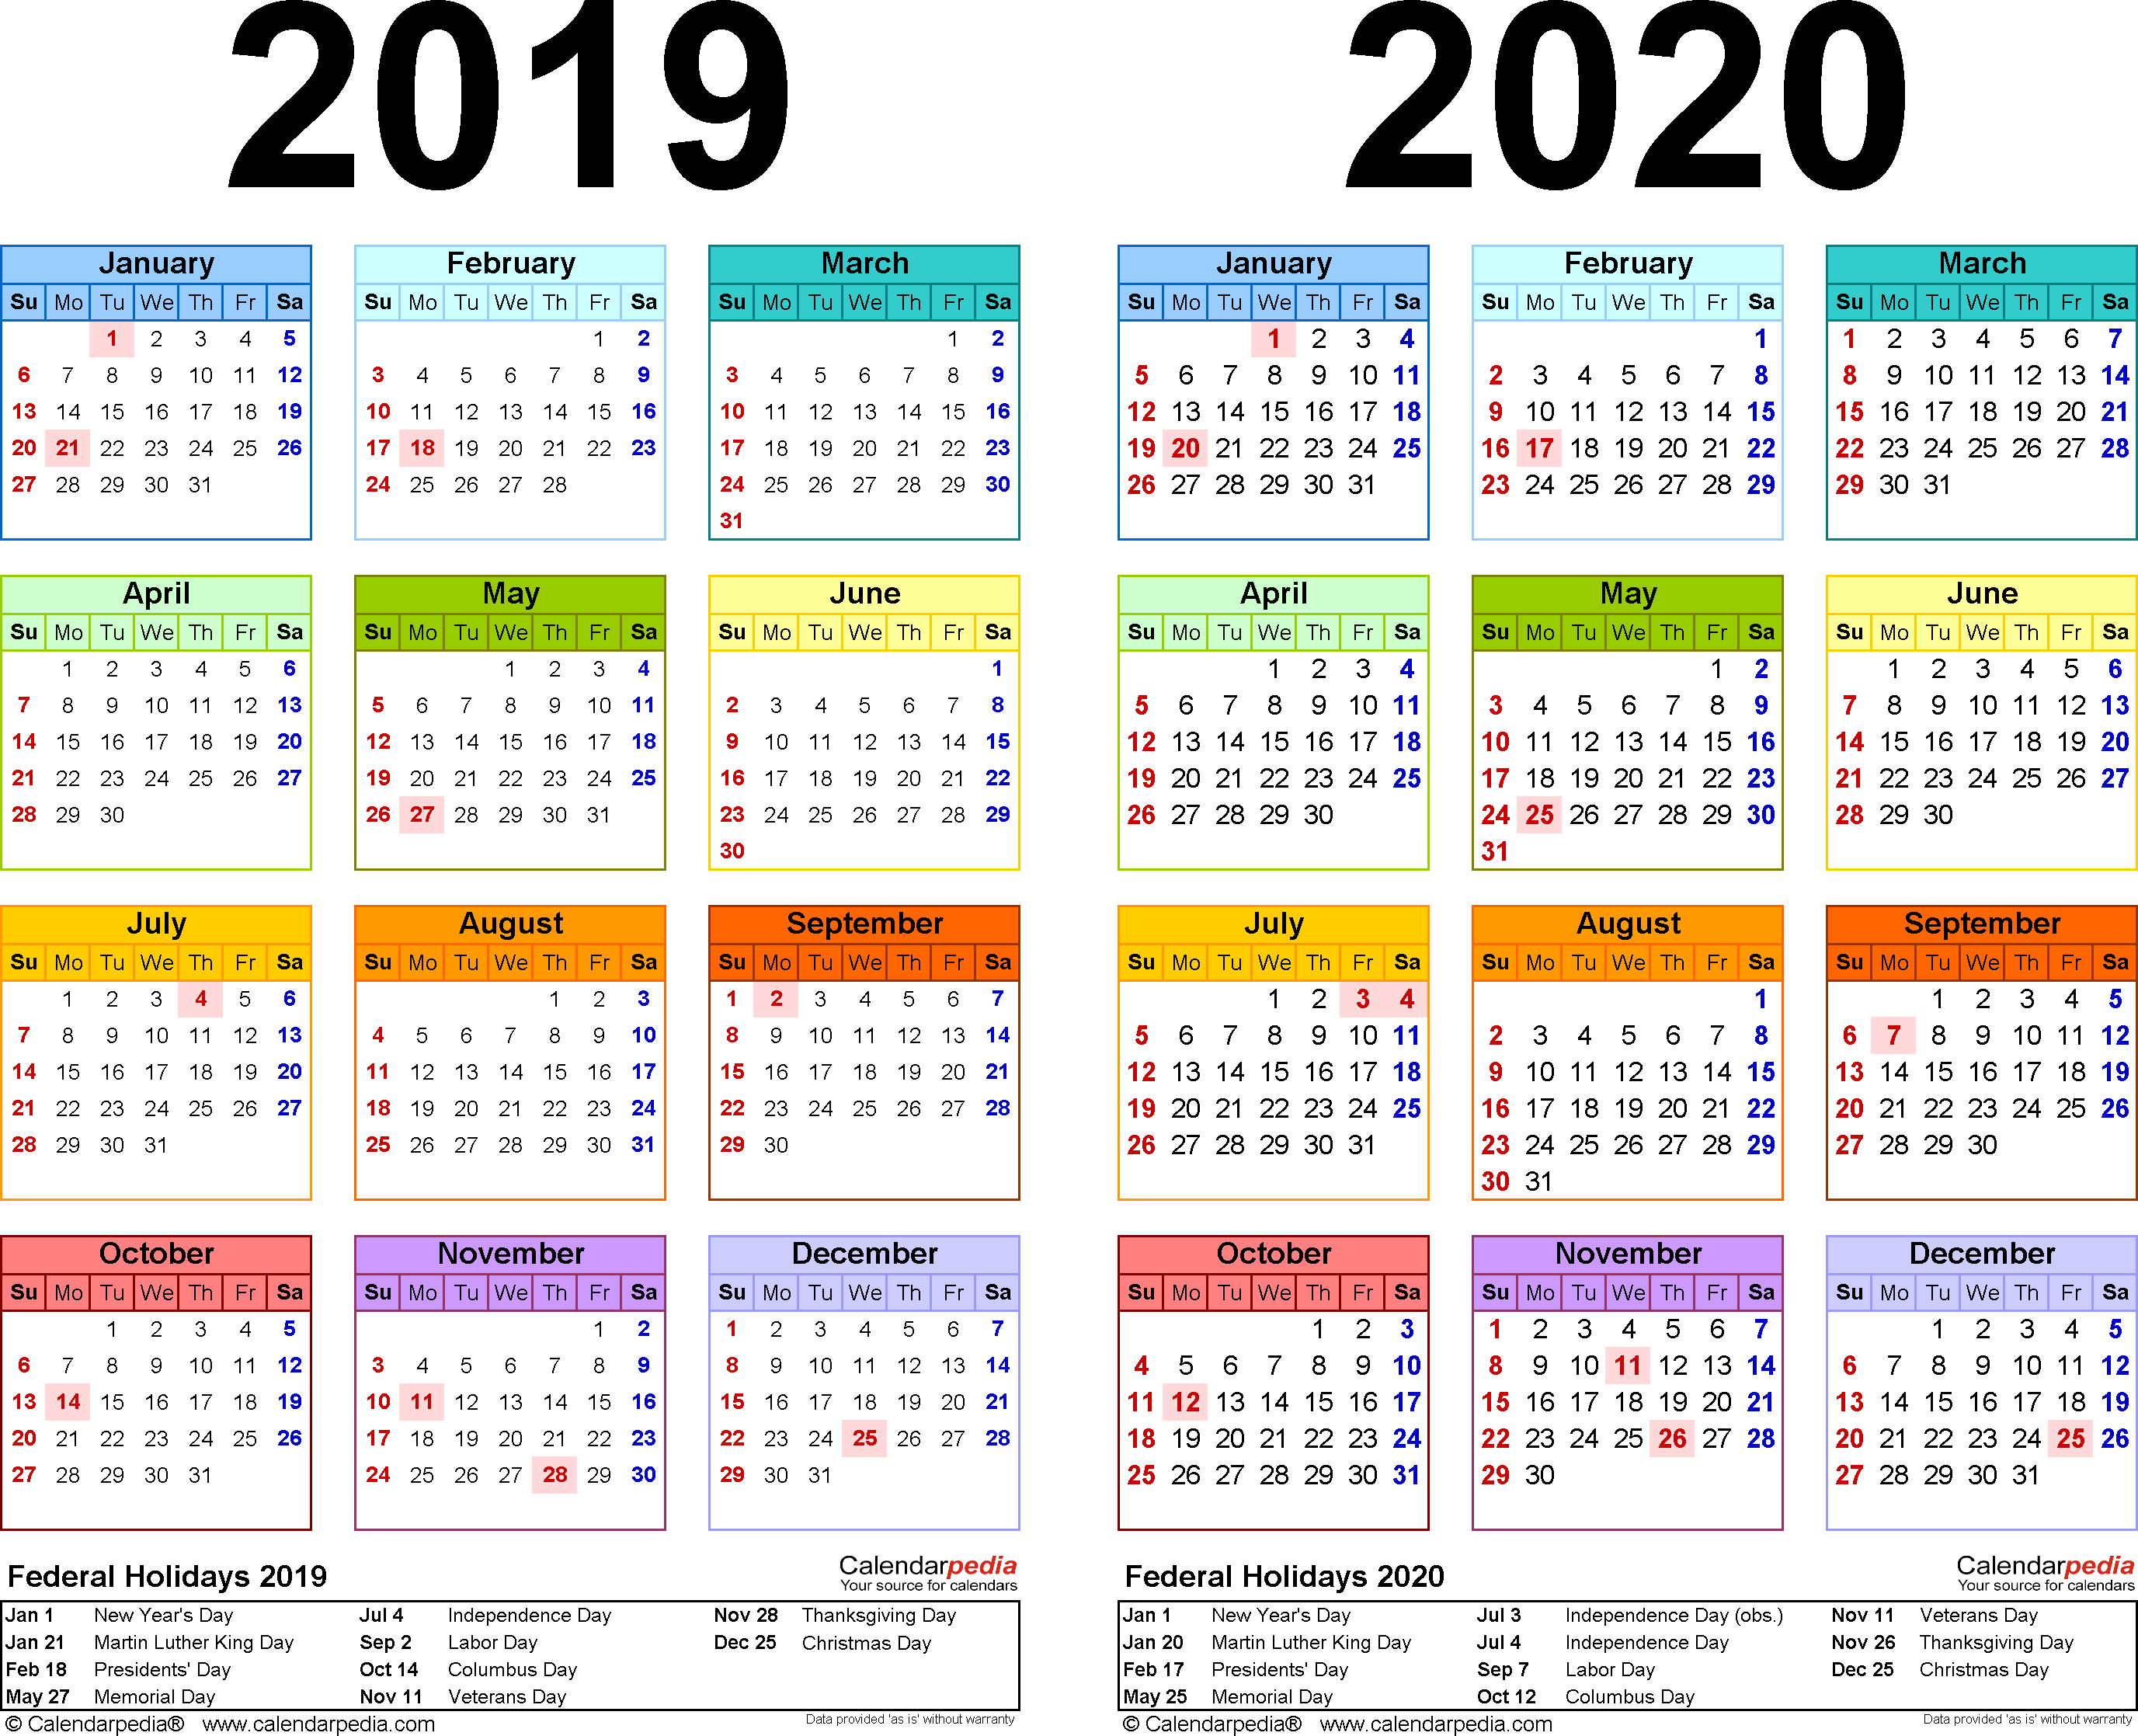 2019-2020 Calendar - Free Printable Two-Year Word Calendars within Calendar Maker July 2019-June 2020